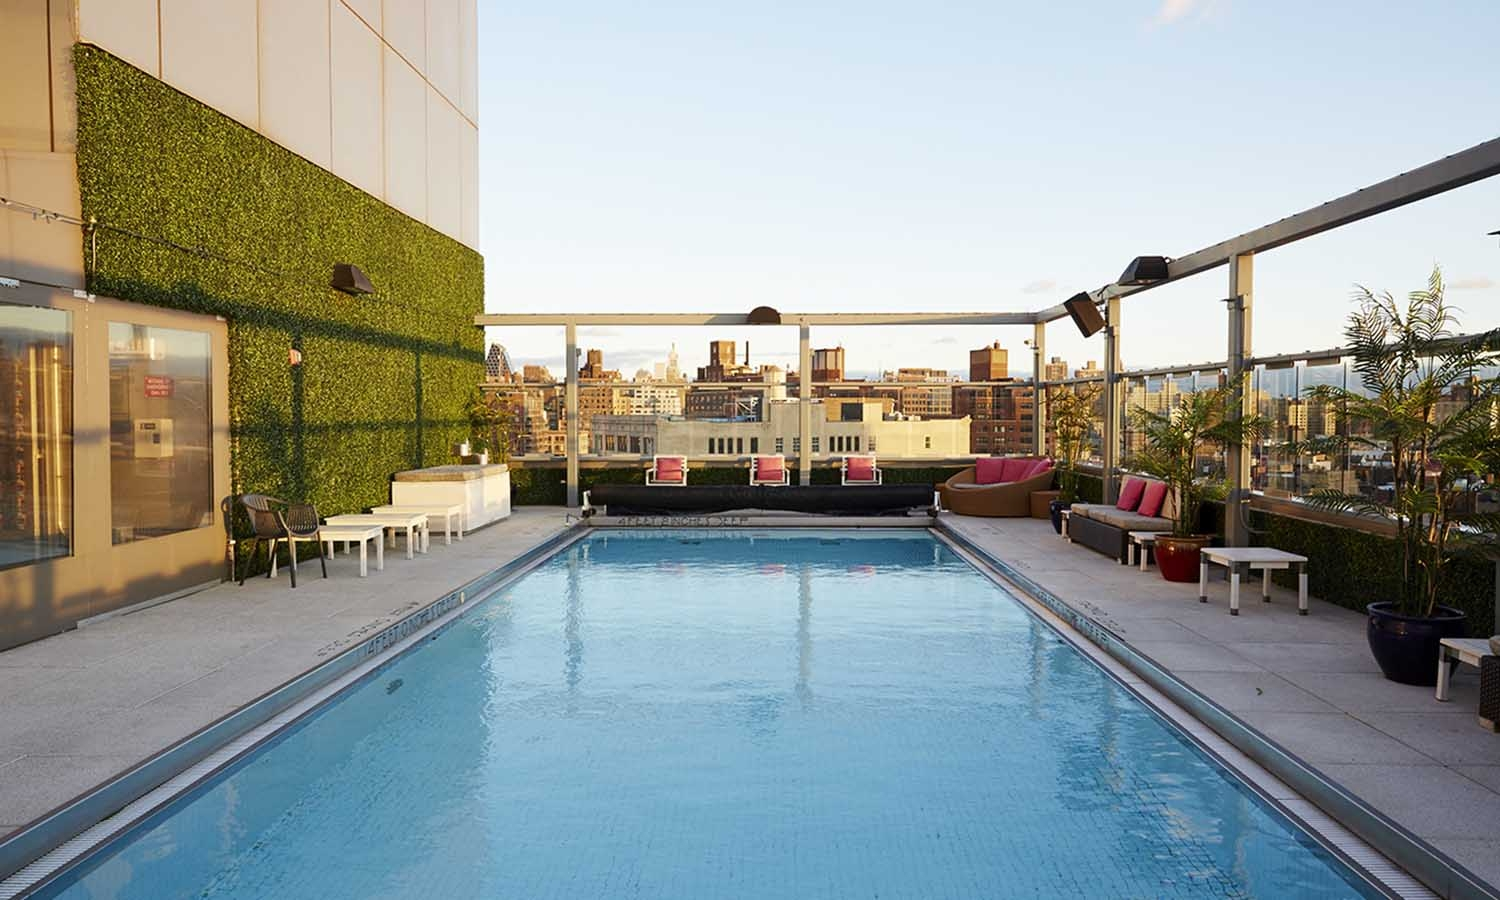 10 Top Hotel Rooftop Bars Ranked By Trip Data Uber Blog